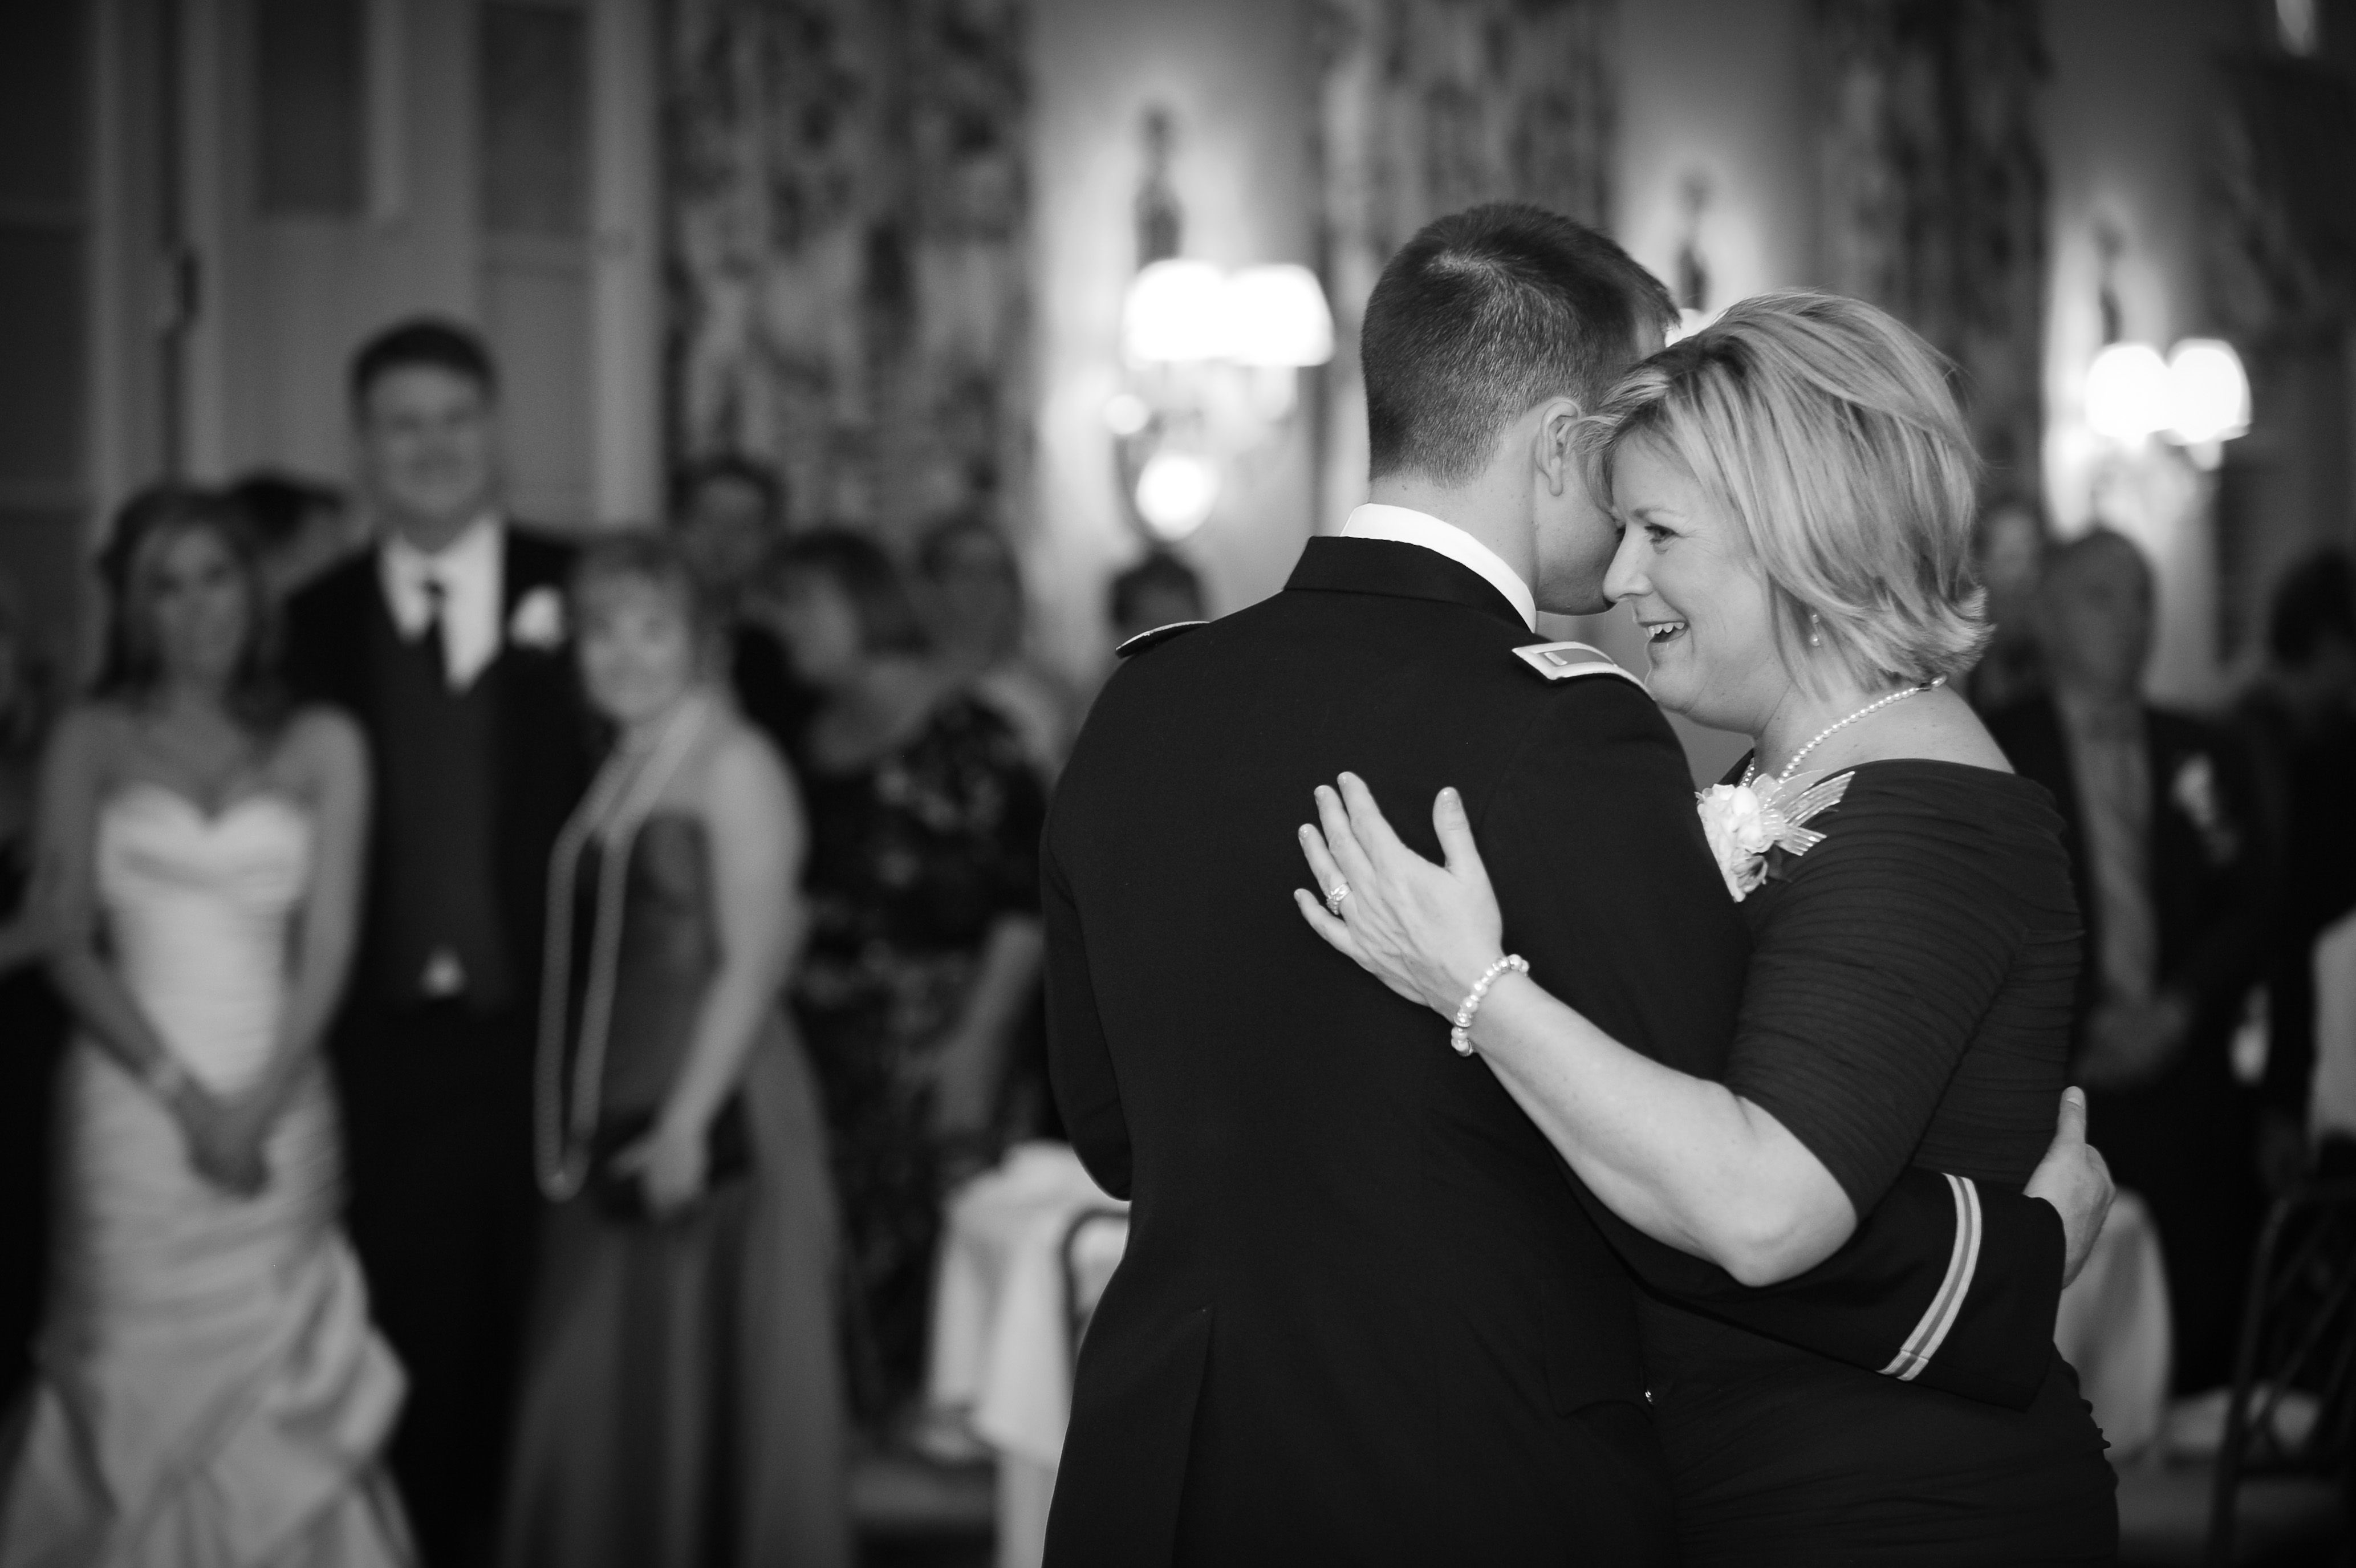 Motherson dance songs tampa wedding planner wedding packages motherson dance songs tampa wedding planner wedding packages petals and promises events junglespirit Choice Image